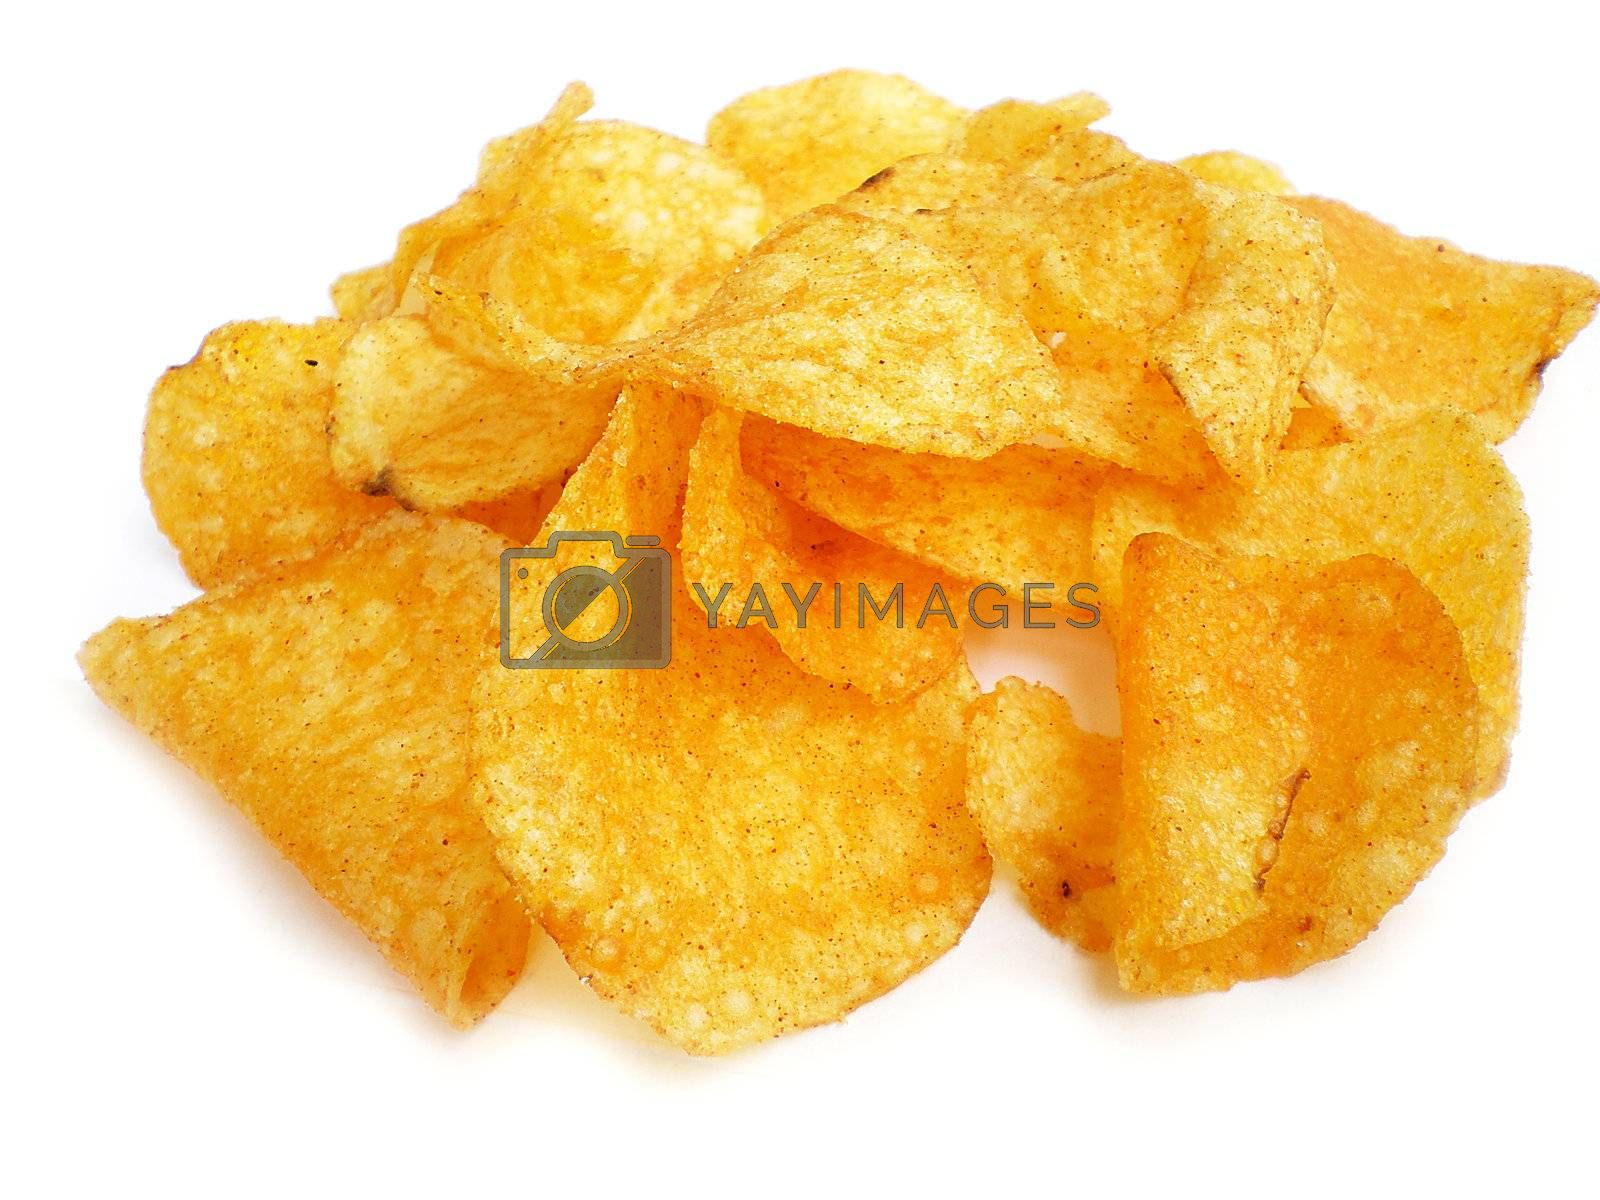 Royalty free image of chips by Dessie_bg